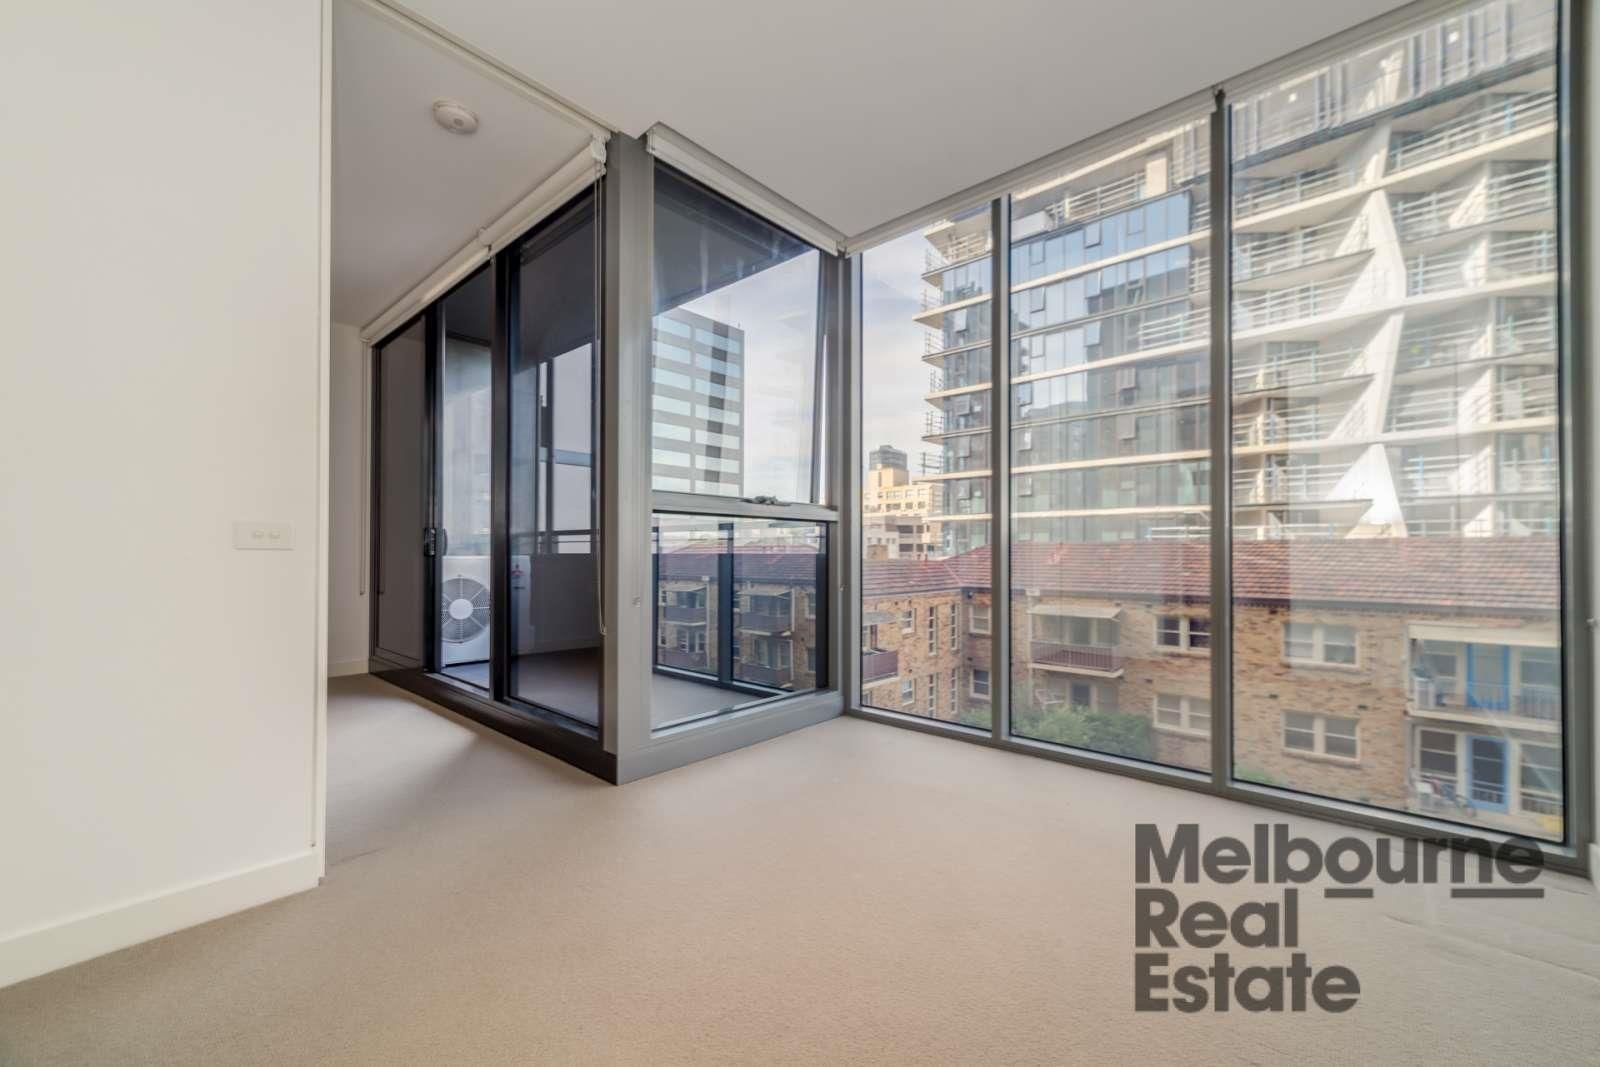 209/74 Queens Road, Melbourne 3004 VIC 3004, Image 2